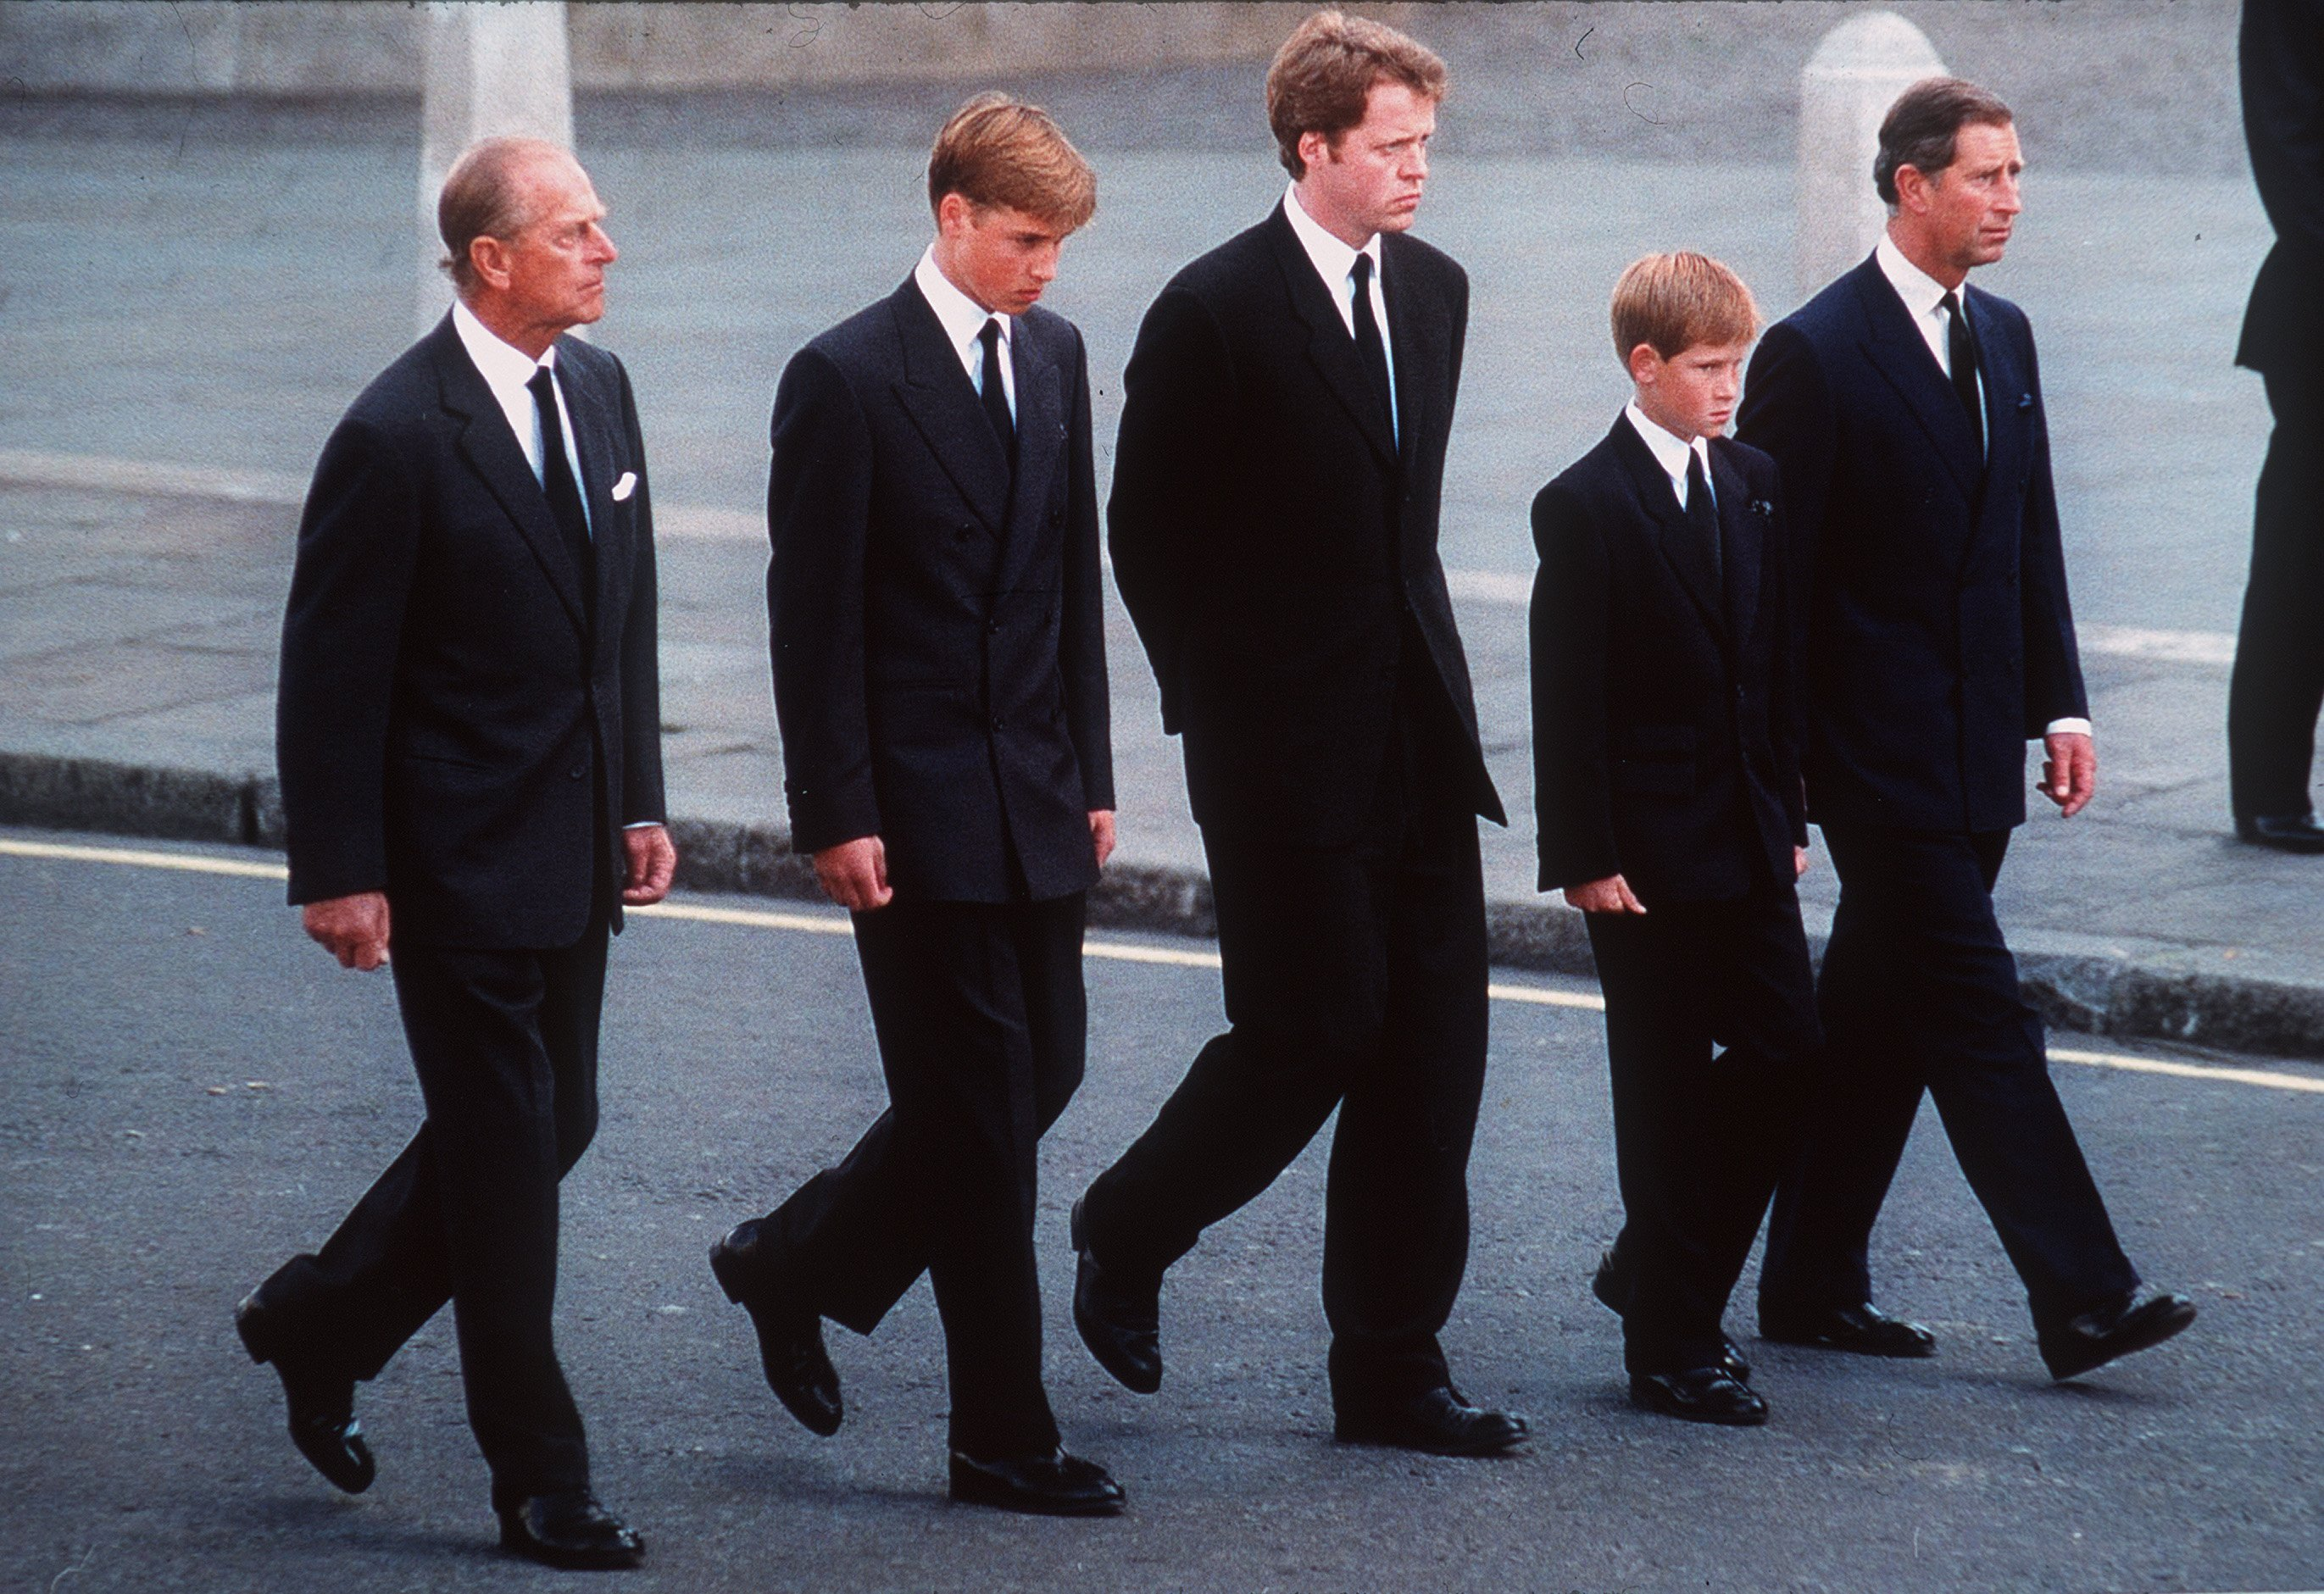 Image Source: Getty Images/ The Royal Men of the British Monarchy